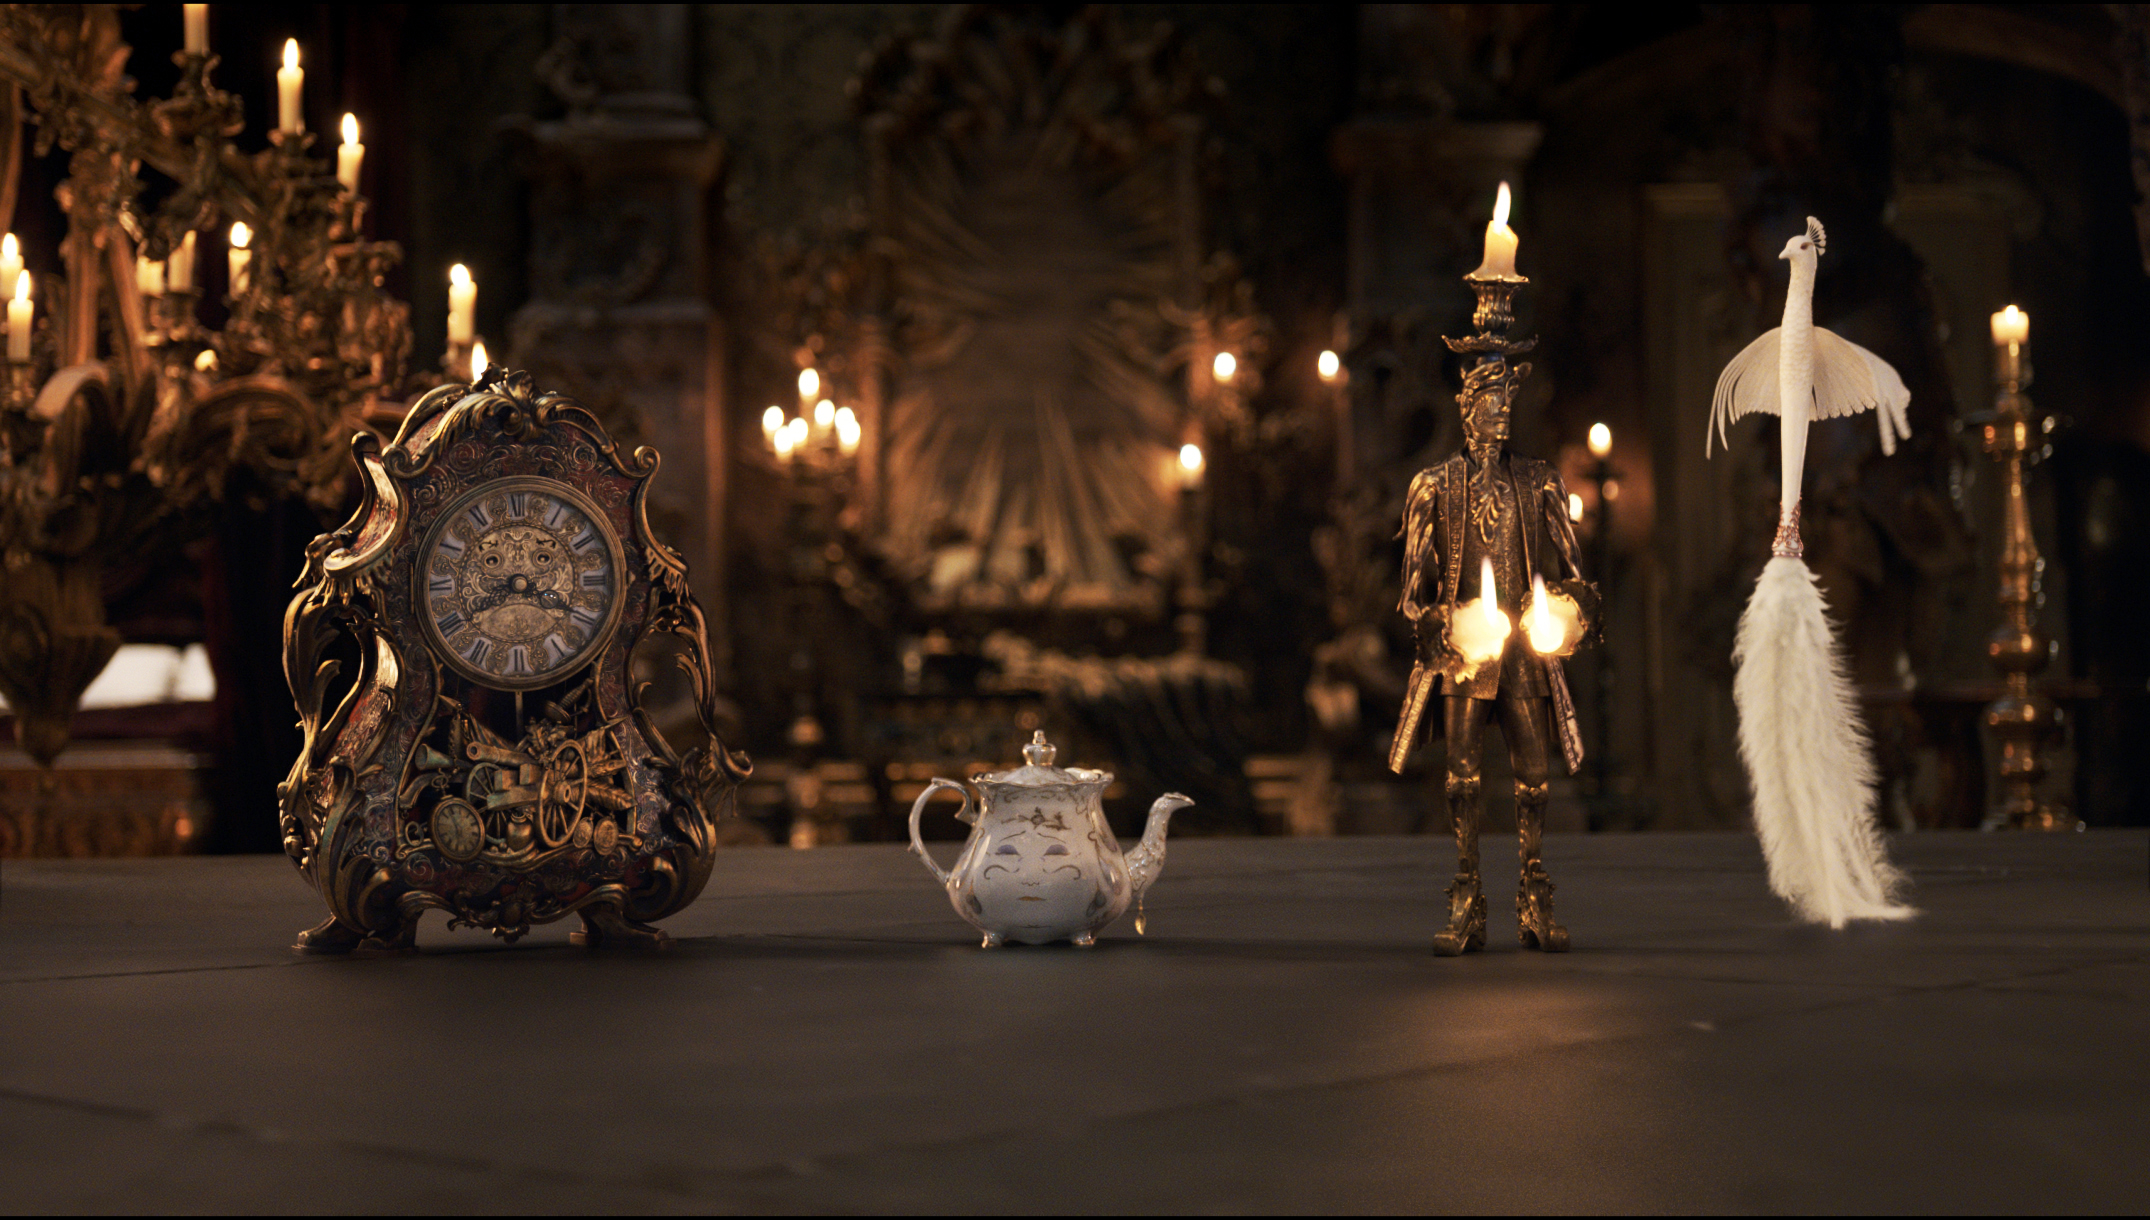 Check out the cool reimagination of the household objects: Cogsworth (McKellen), Mrs. Potts (Thompson), Lumiere (McGregor) and Plumette (Mbatha-Raw).